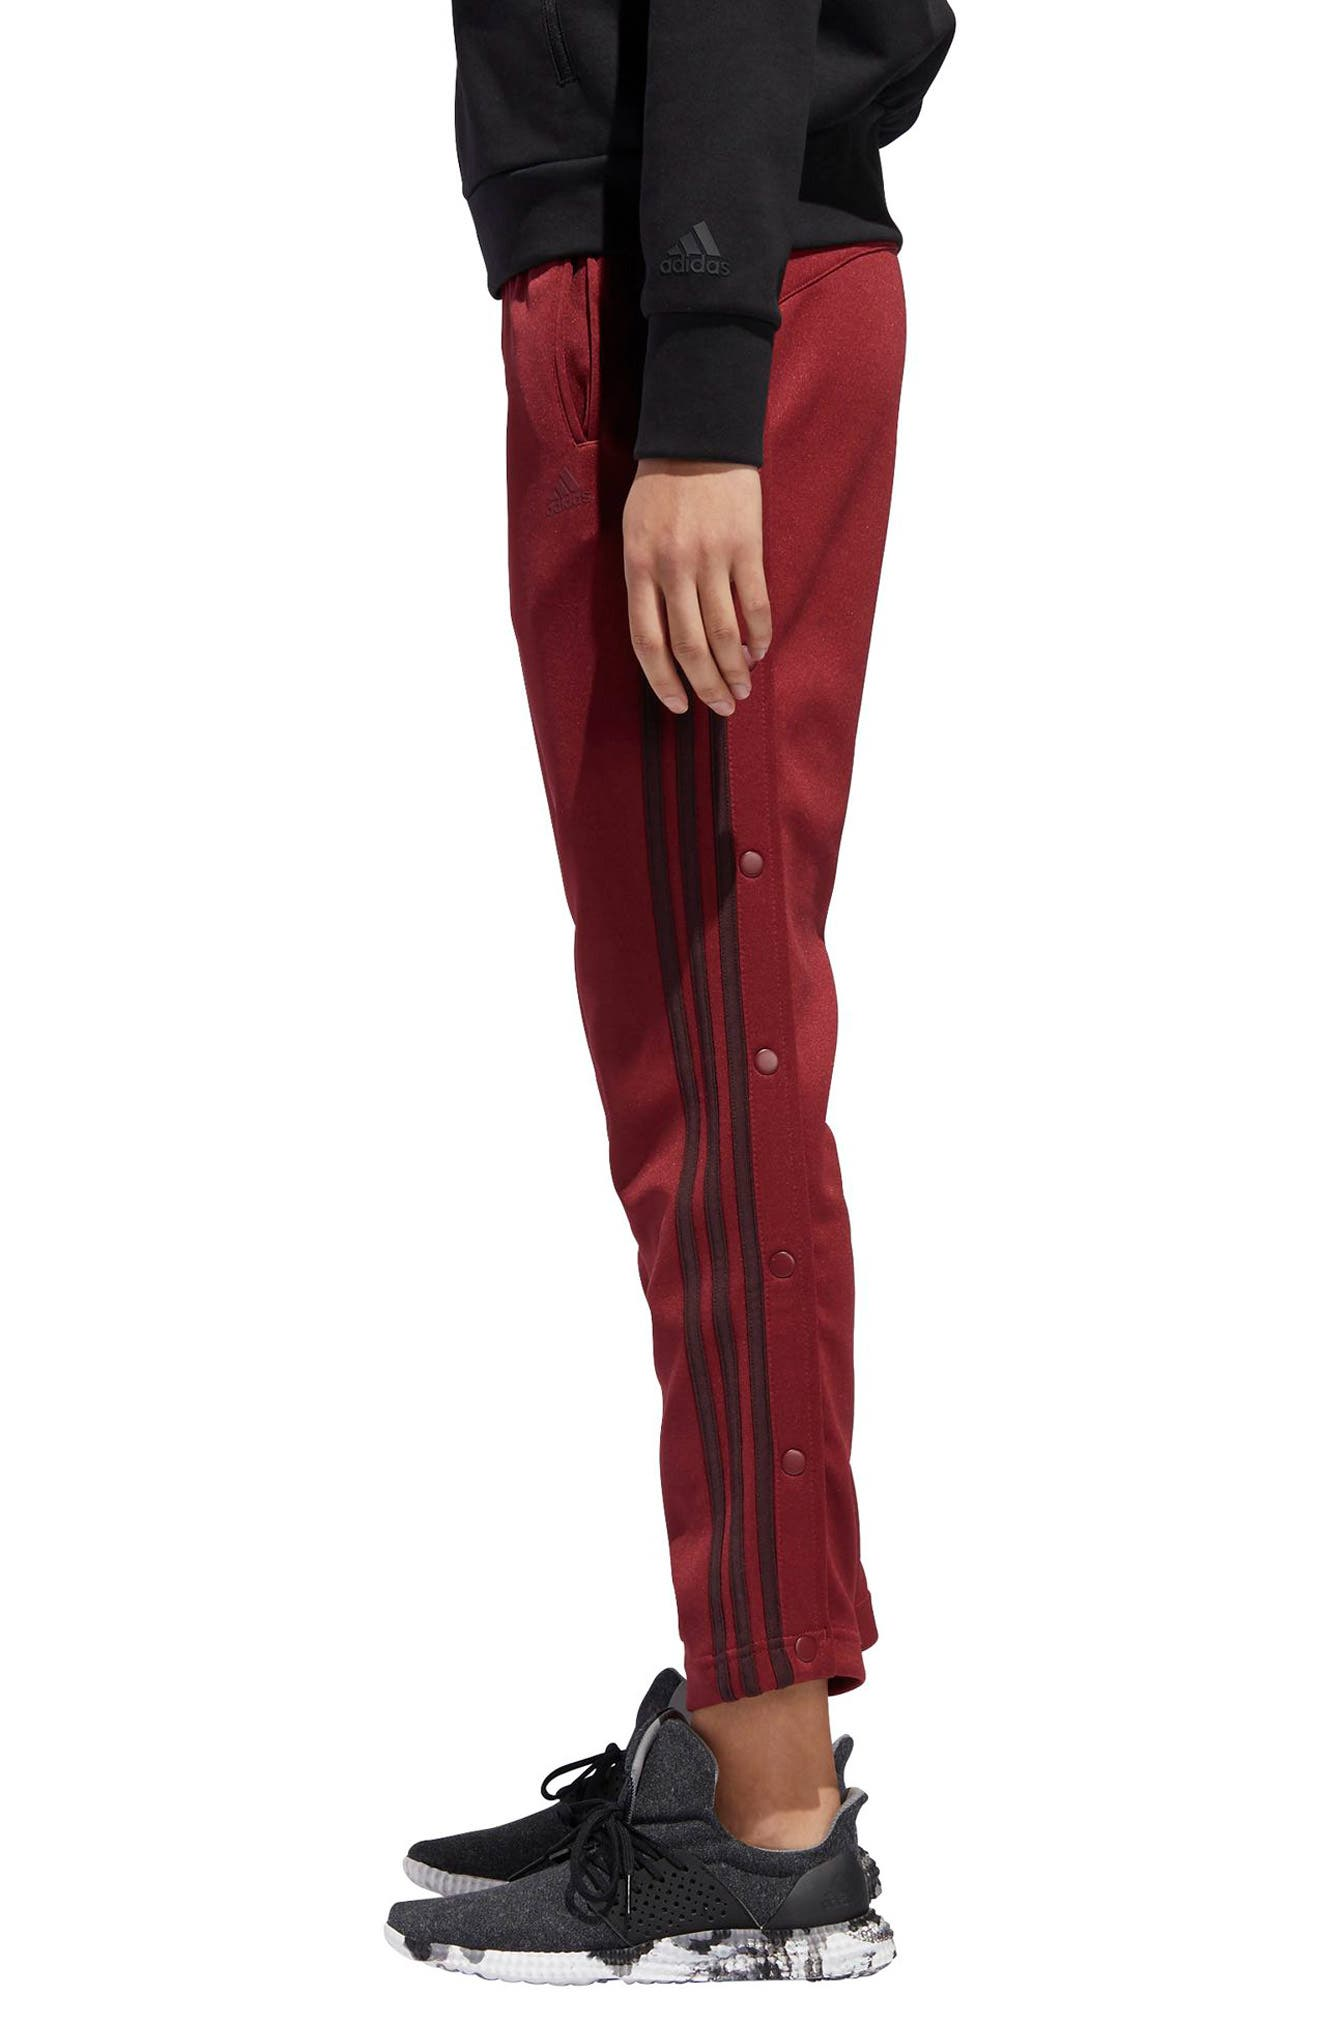 Tricot Snap Pants,                             Alternate thumbnail 4, color,                             NOBLE MAROON/ NIGHT RED